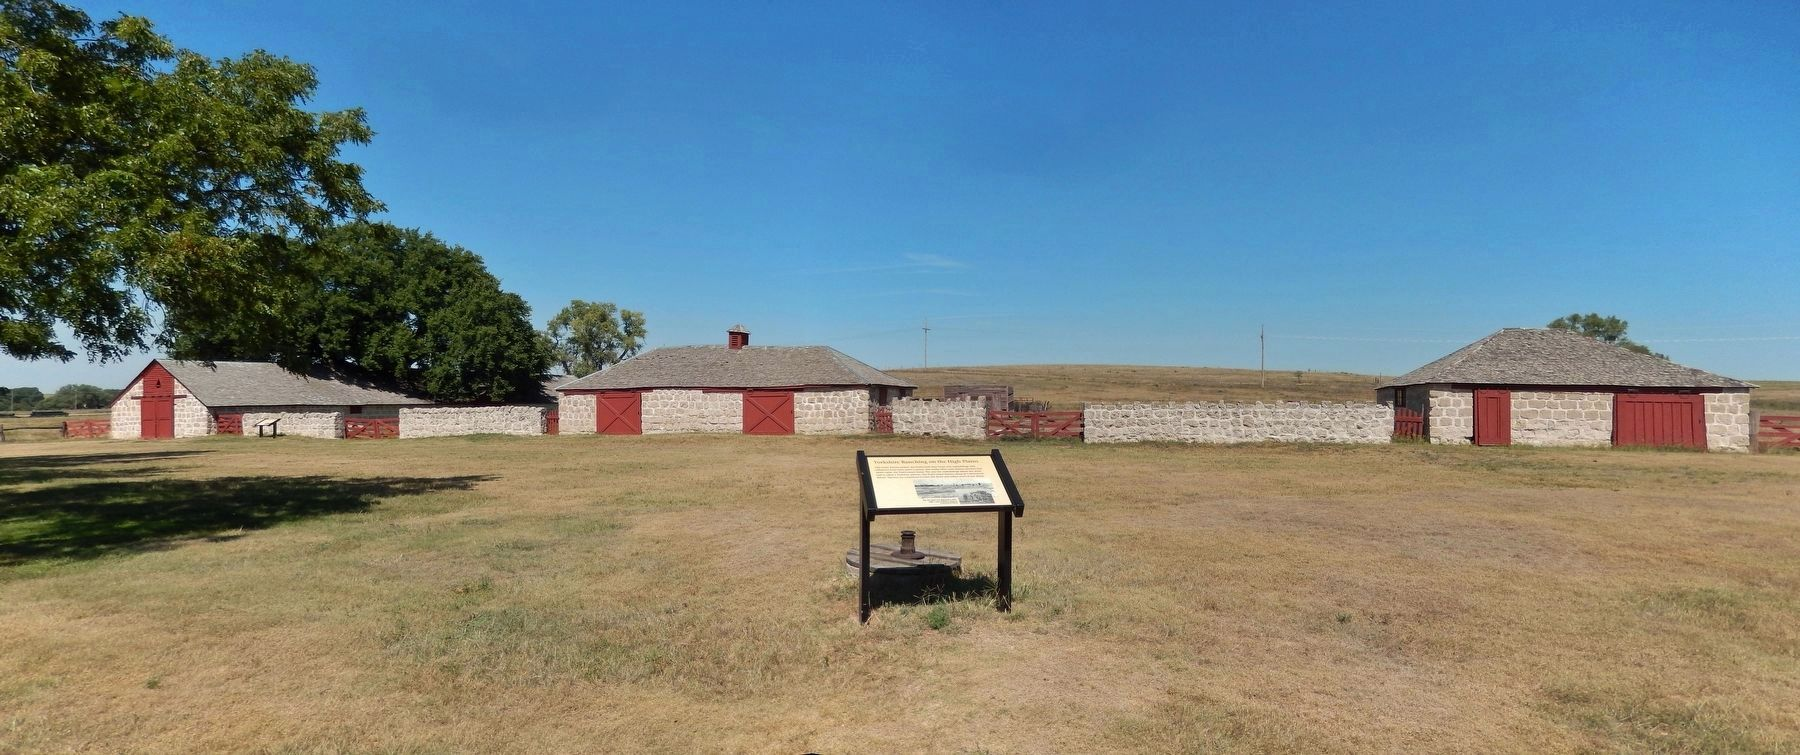 Yorkshire Ranching on the High Plains Marker image. Click for full size.